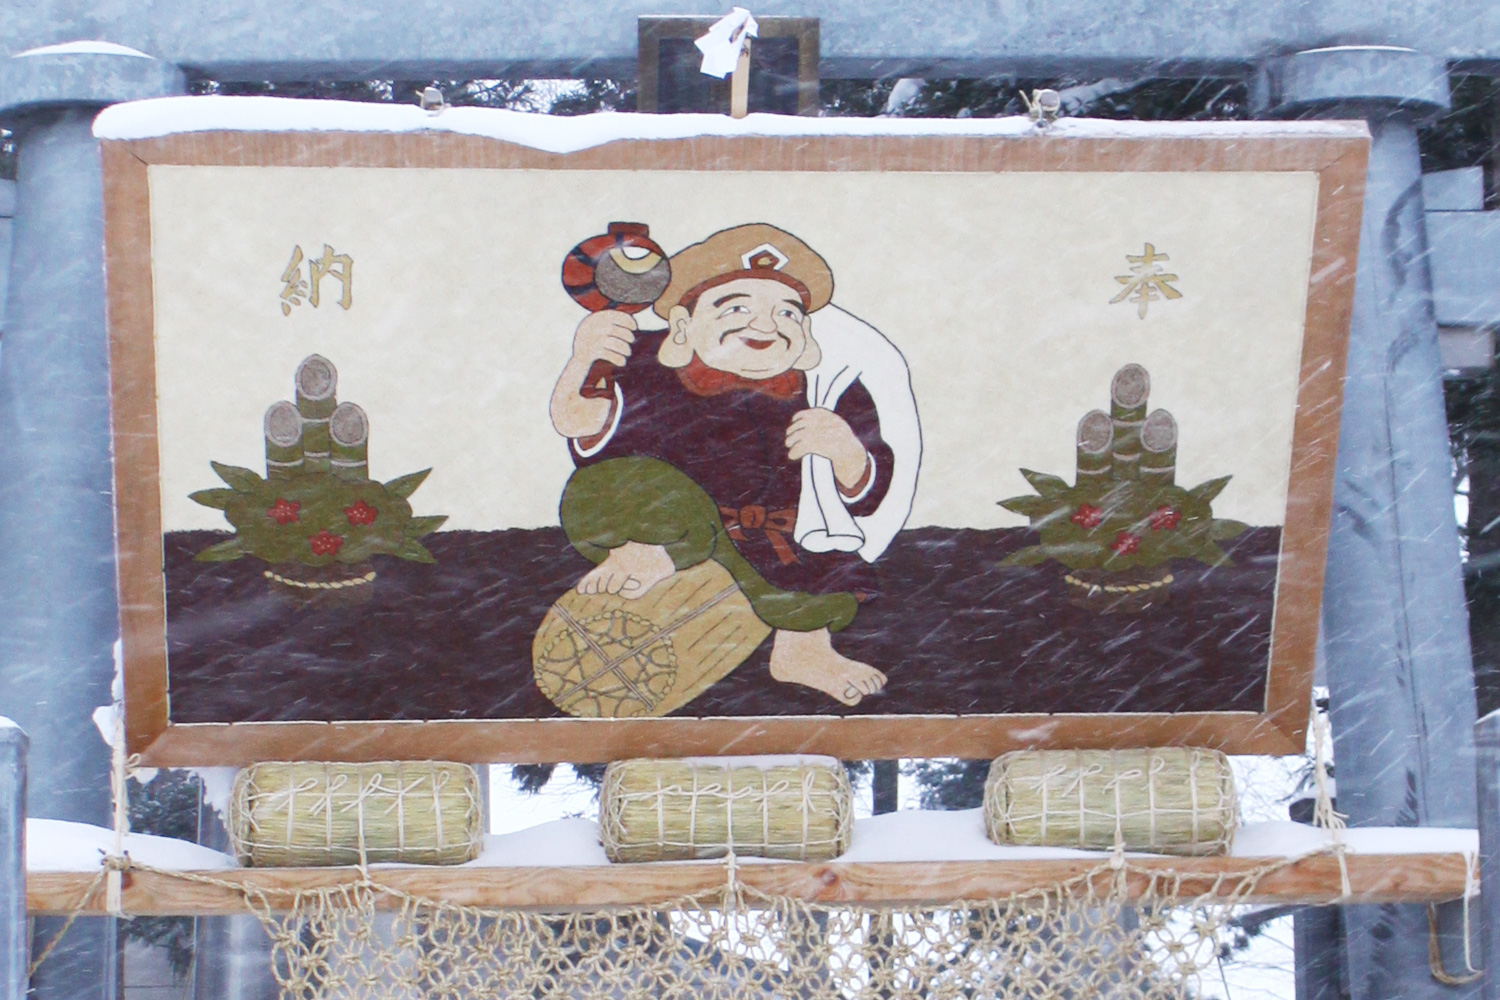 Tsuruta is the only town in Japan which has been keeping the Yayoiga tradition.